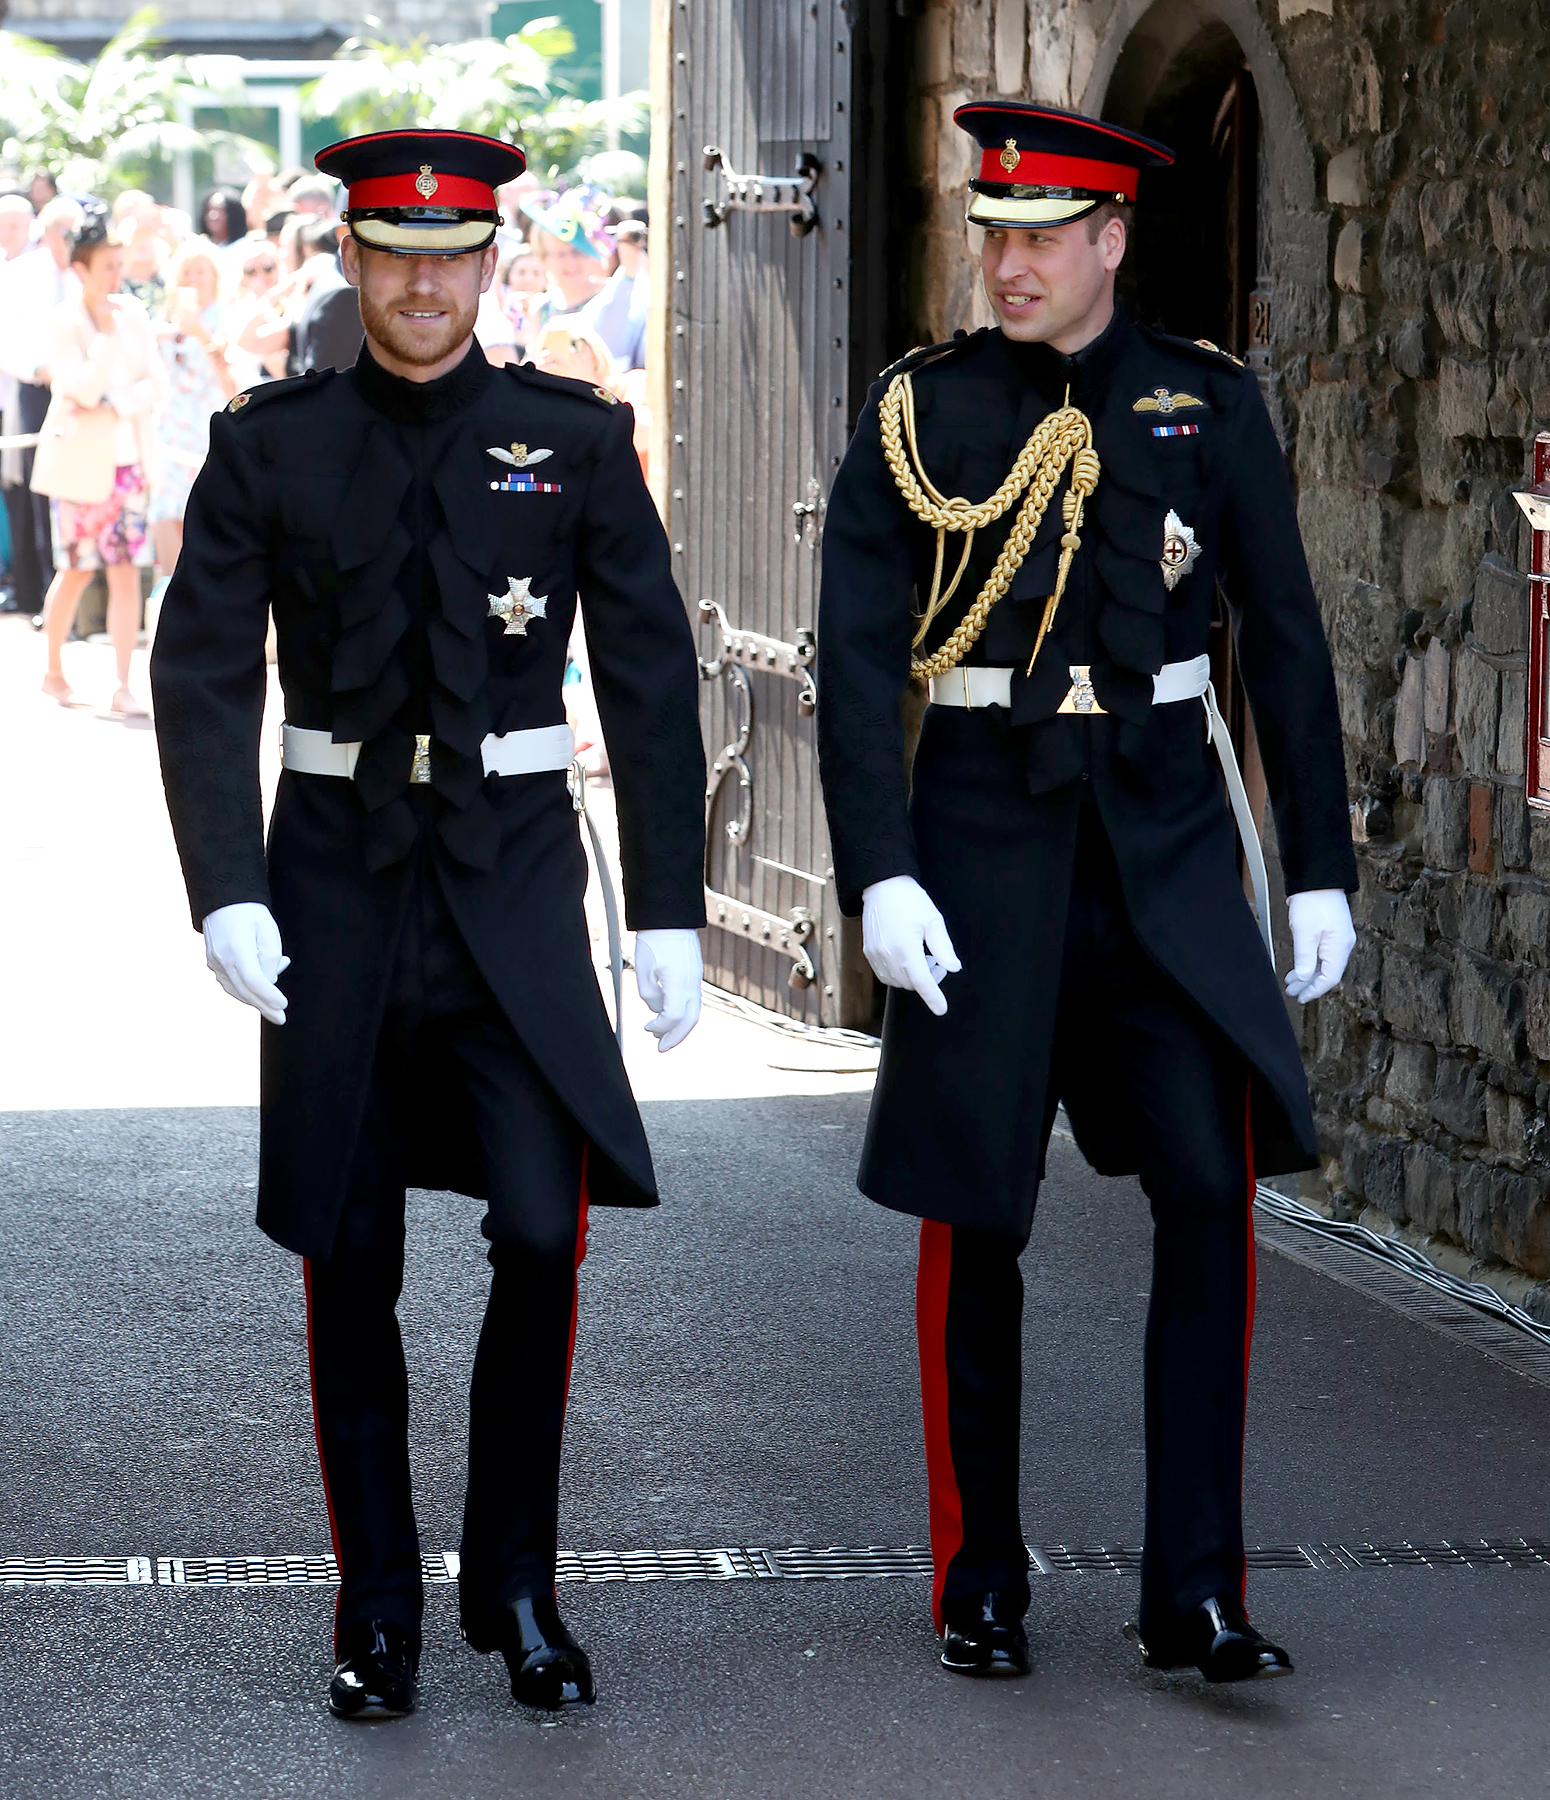 Image result for harry and william royal wedding